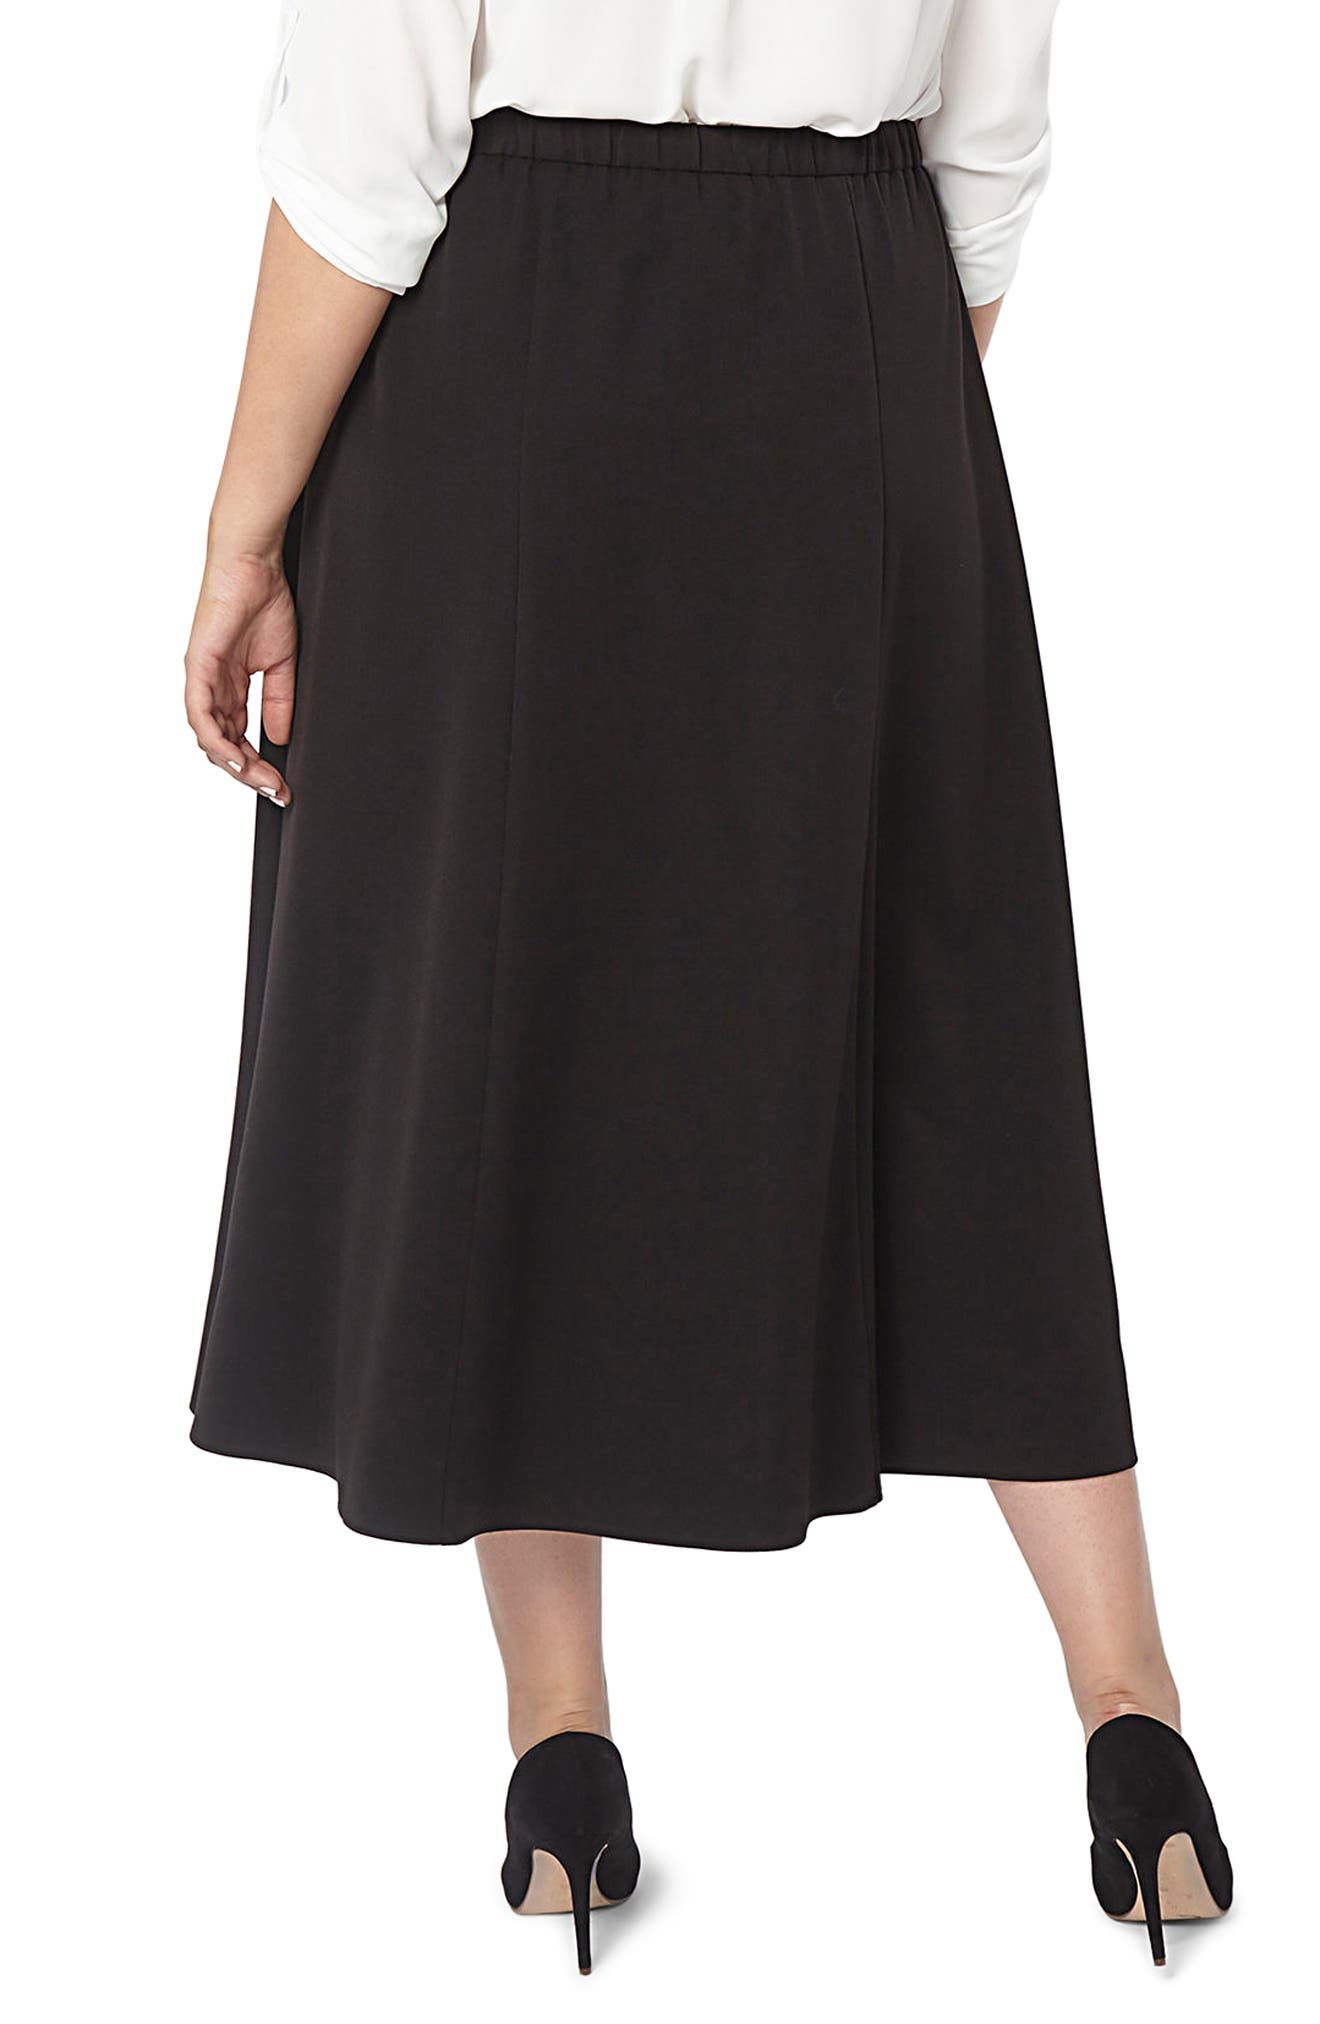 Picasso 36 Skirt,                             Alternate thumbnail 3, color,                             Black